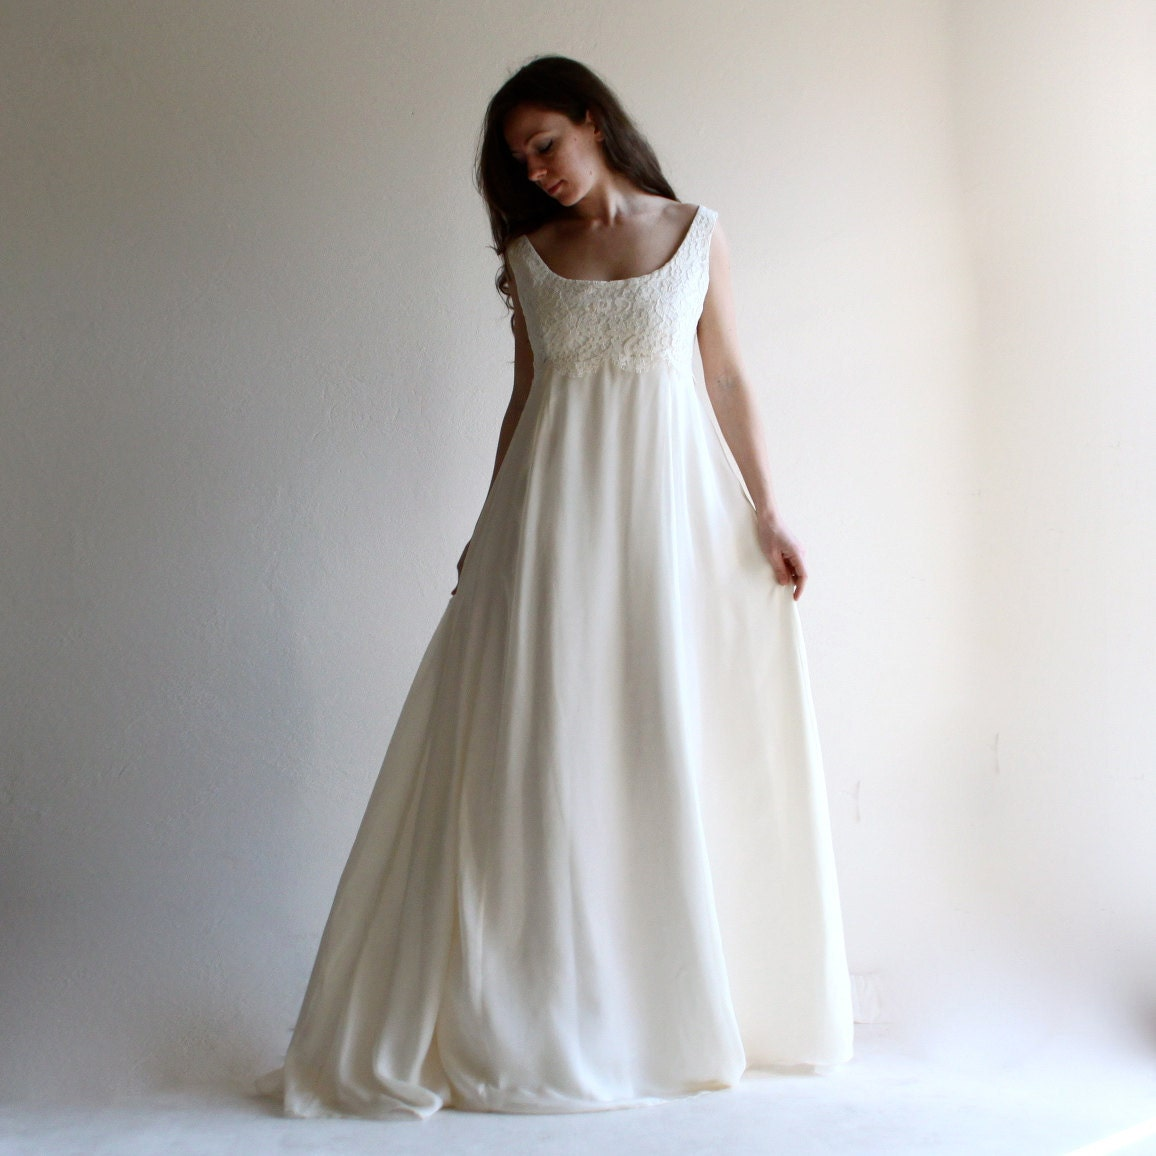 Handmade Clothing & Whimsical Bridal Gowns von LoreTree auf Etsy